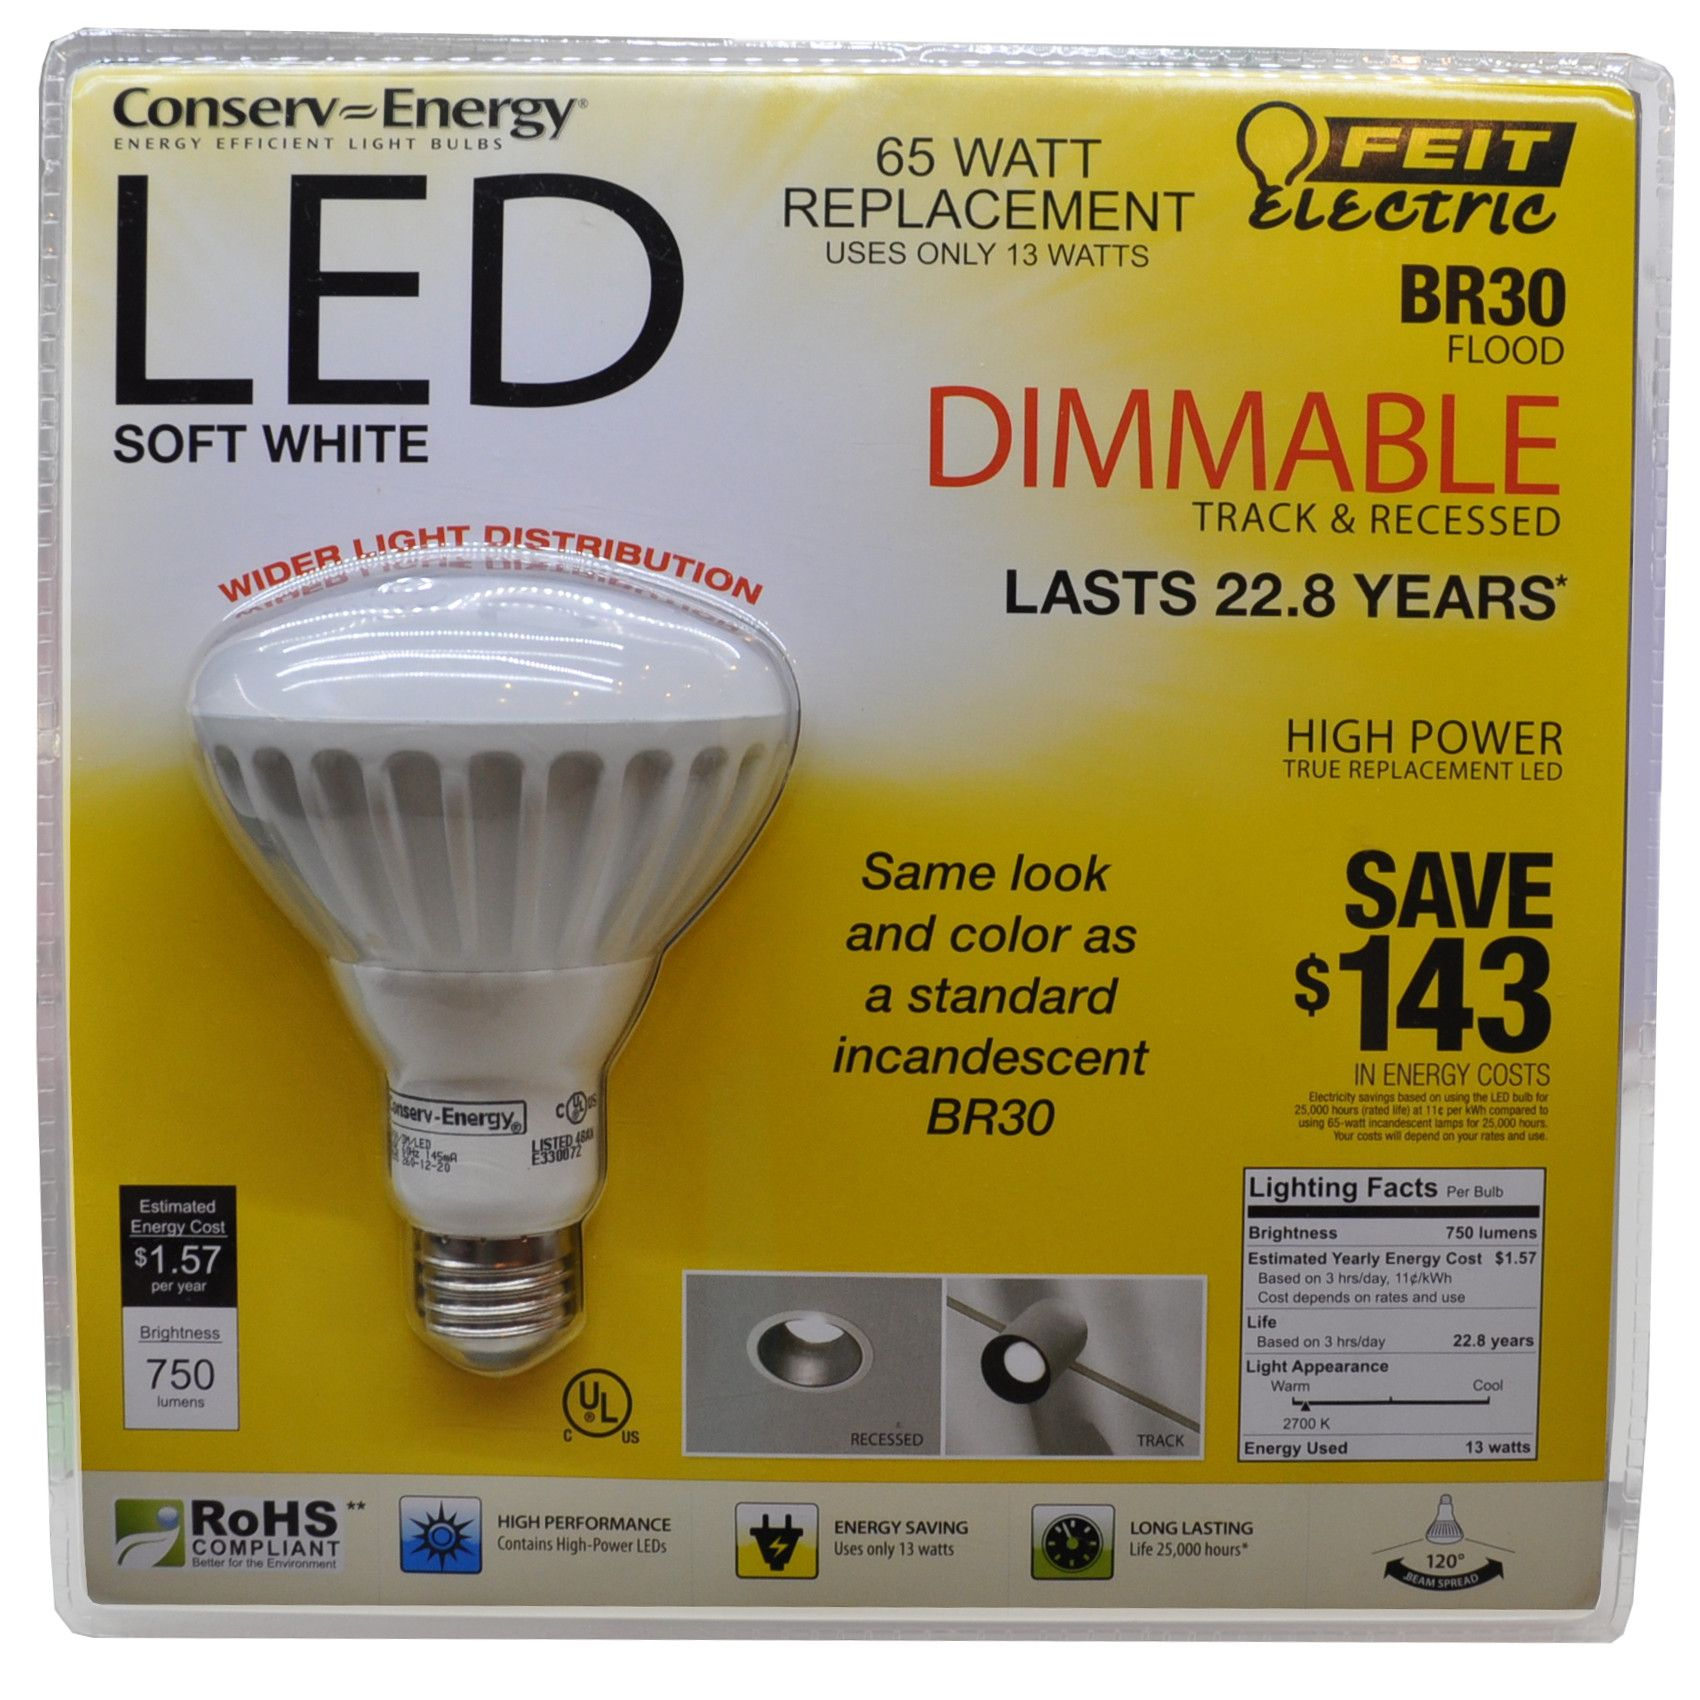 Costco Led Light Strip Unique Inspired Led Recommends And Reviews Feit Electric Led Br30 Bulbs For Design Ideas